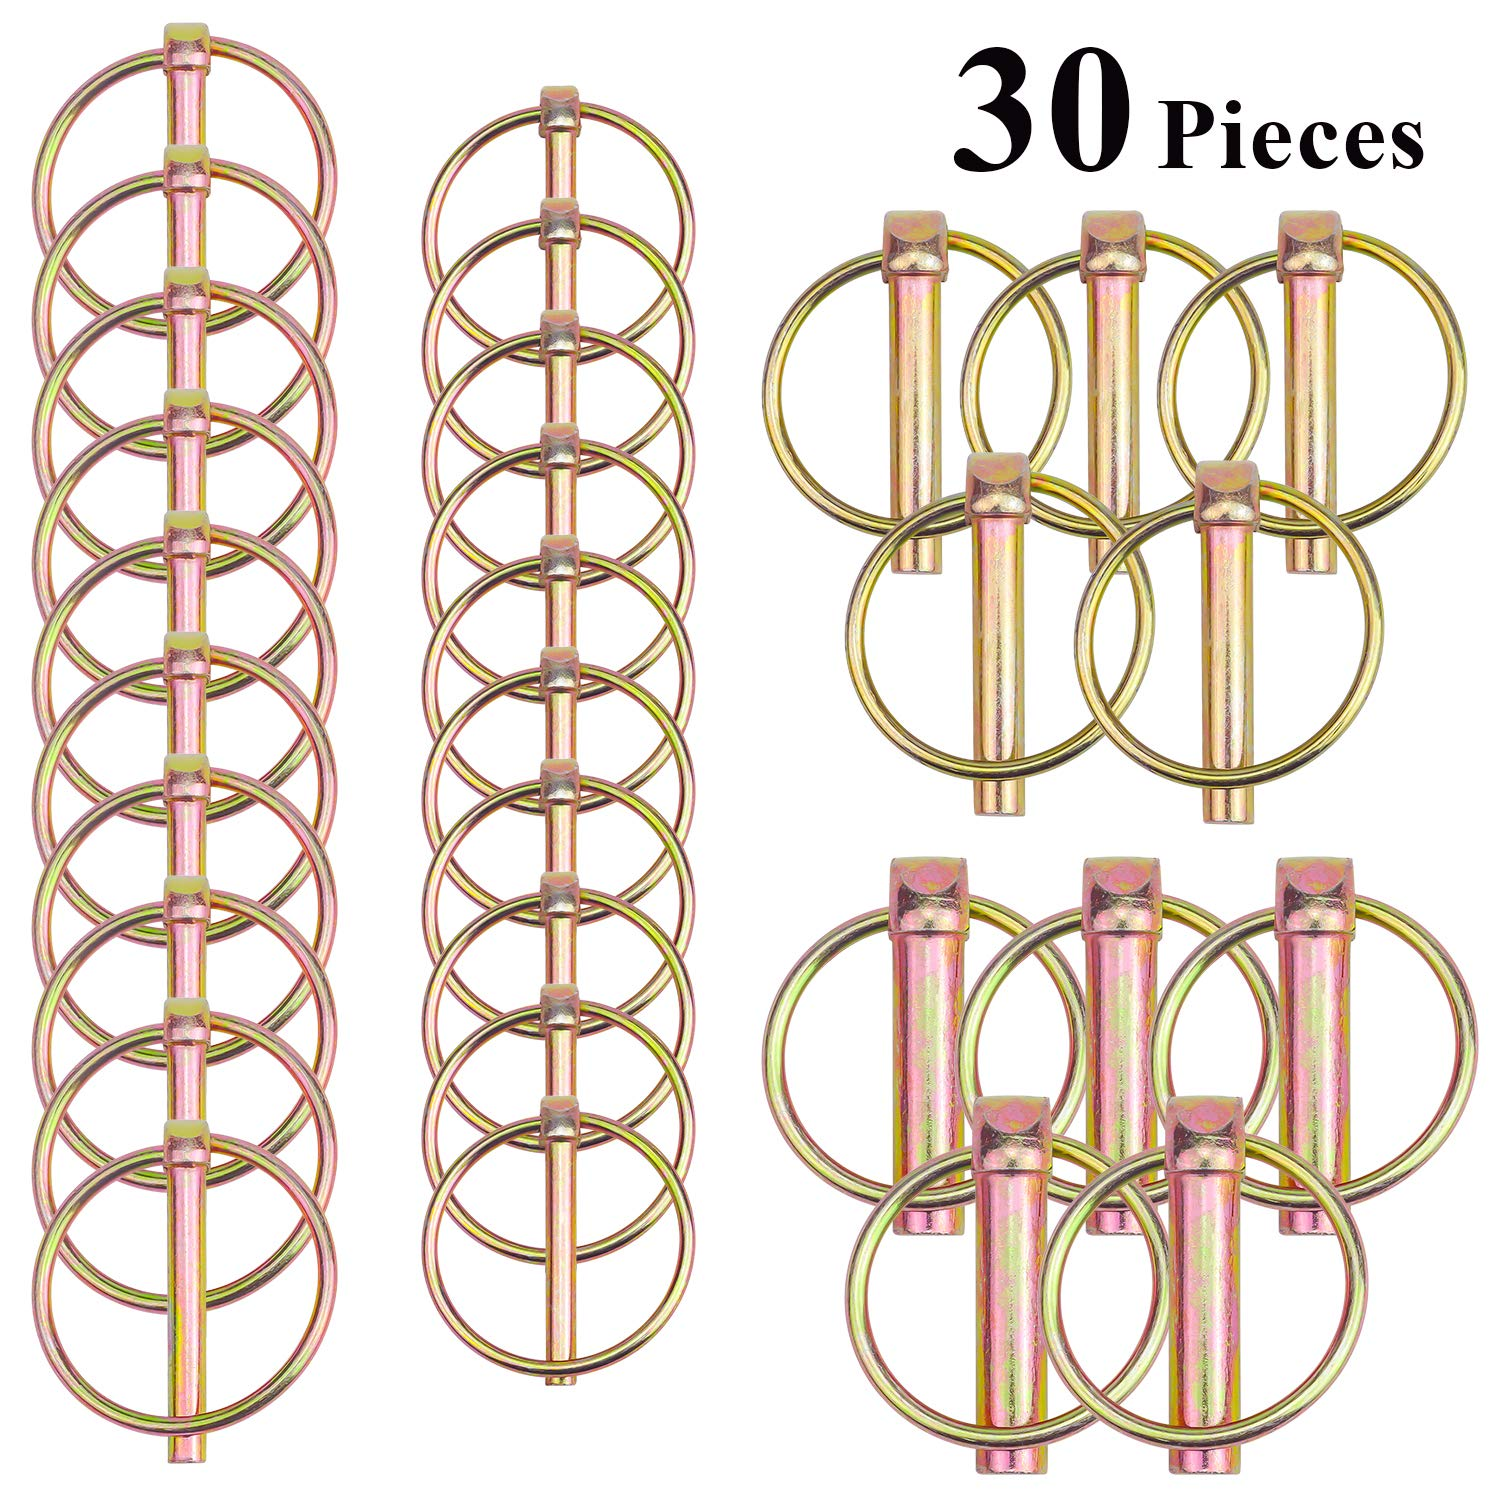 Favordrory 30 Pieces Heavy Duty Linch Pin Assortment Kit for Boat Kayak Canoe Trailer Tractor Trolley Horsebox by Favordrory